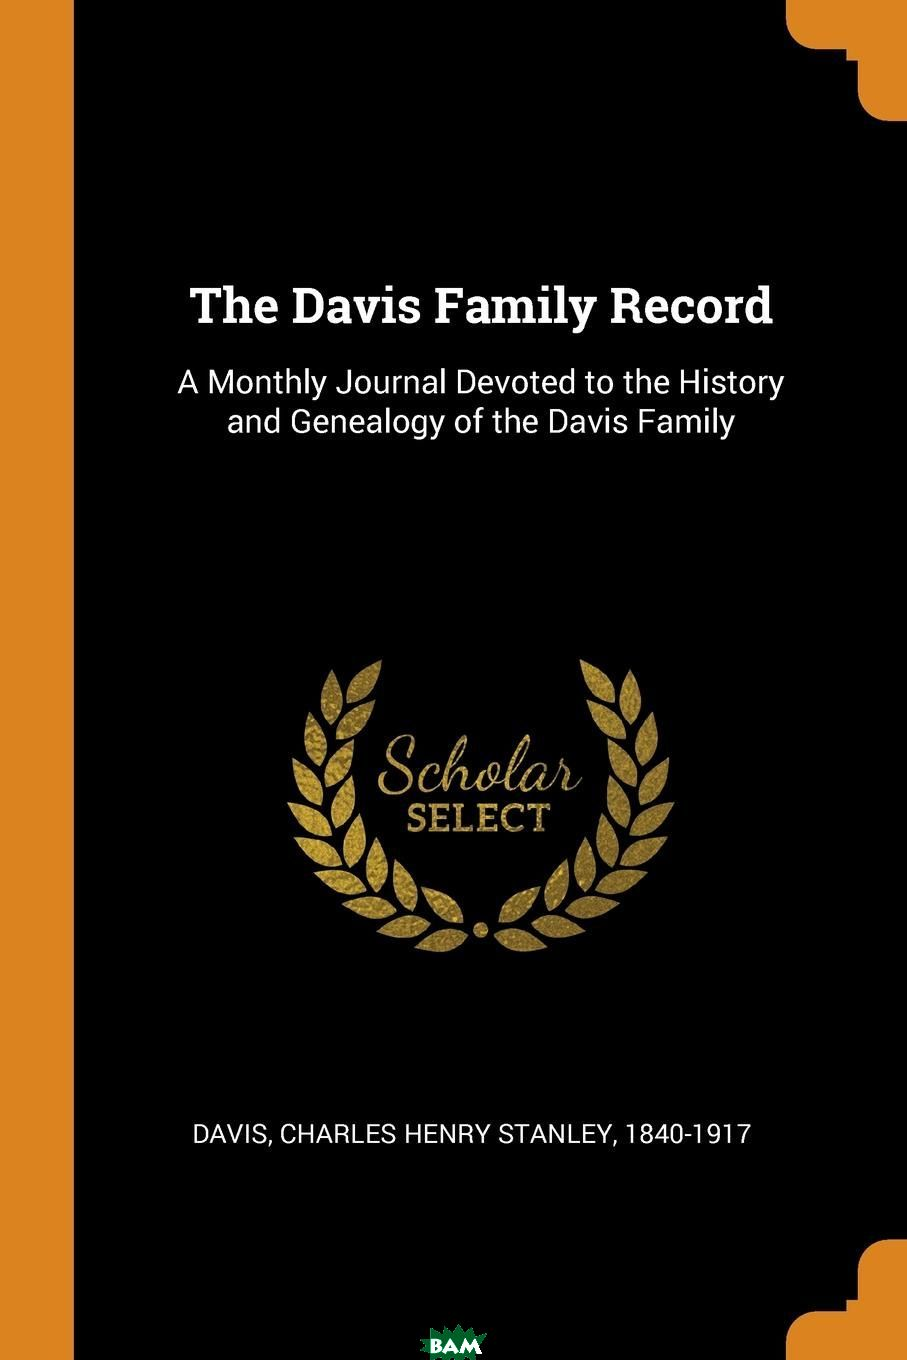 Купить The Davis Family Record. A Monthly Journal Devoted to the History and Genealogy of the Davis Family, Charles Henry Stanley Davis, 9780353215306